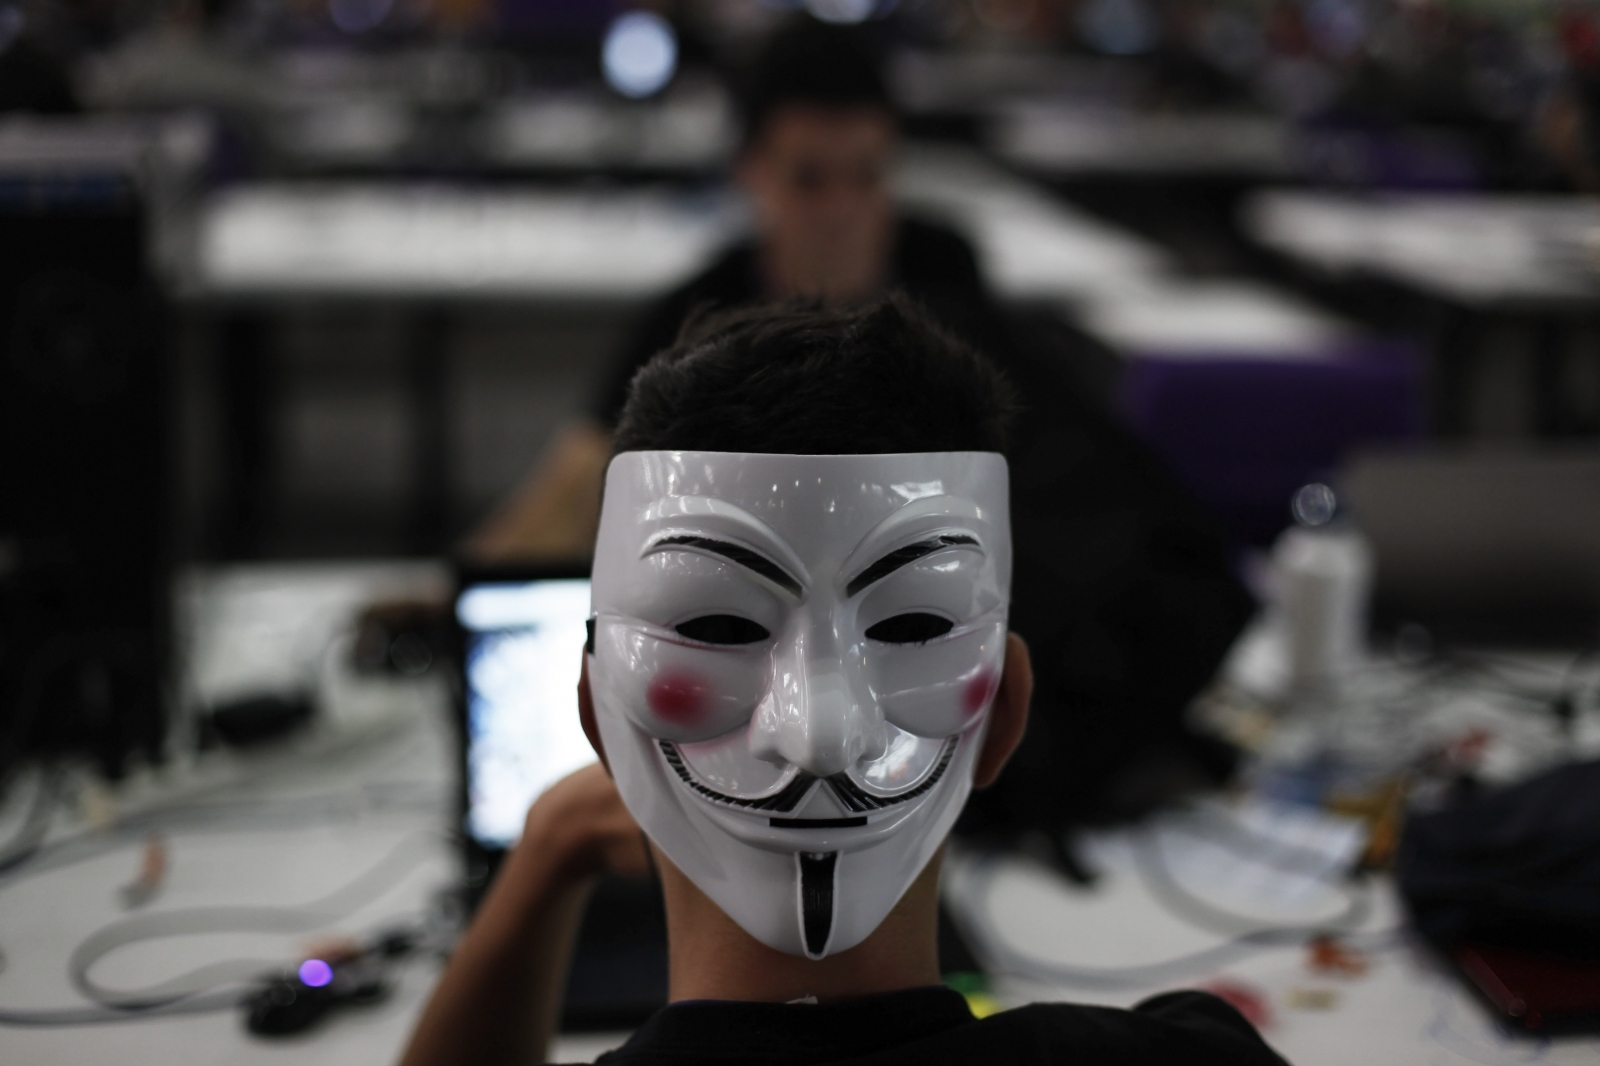 Anonymous hackers shut down Freedom Hosting II - the largest host of dark web sites